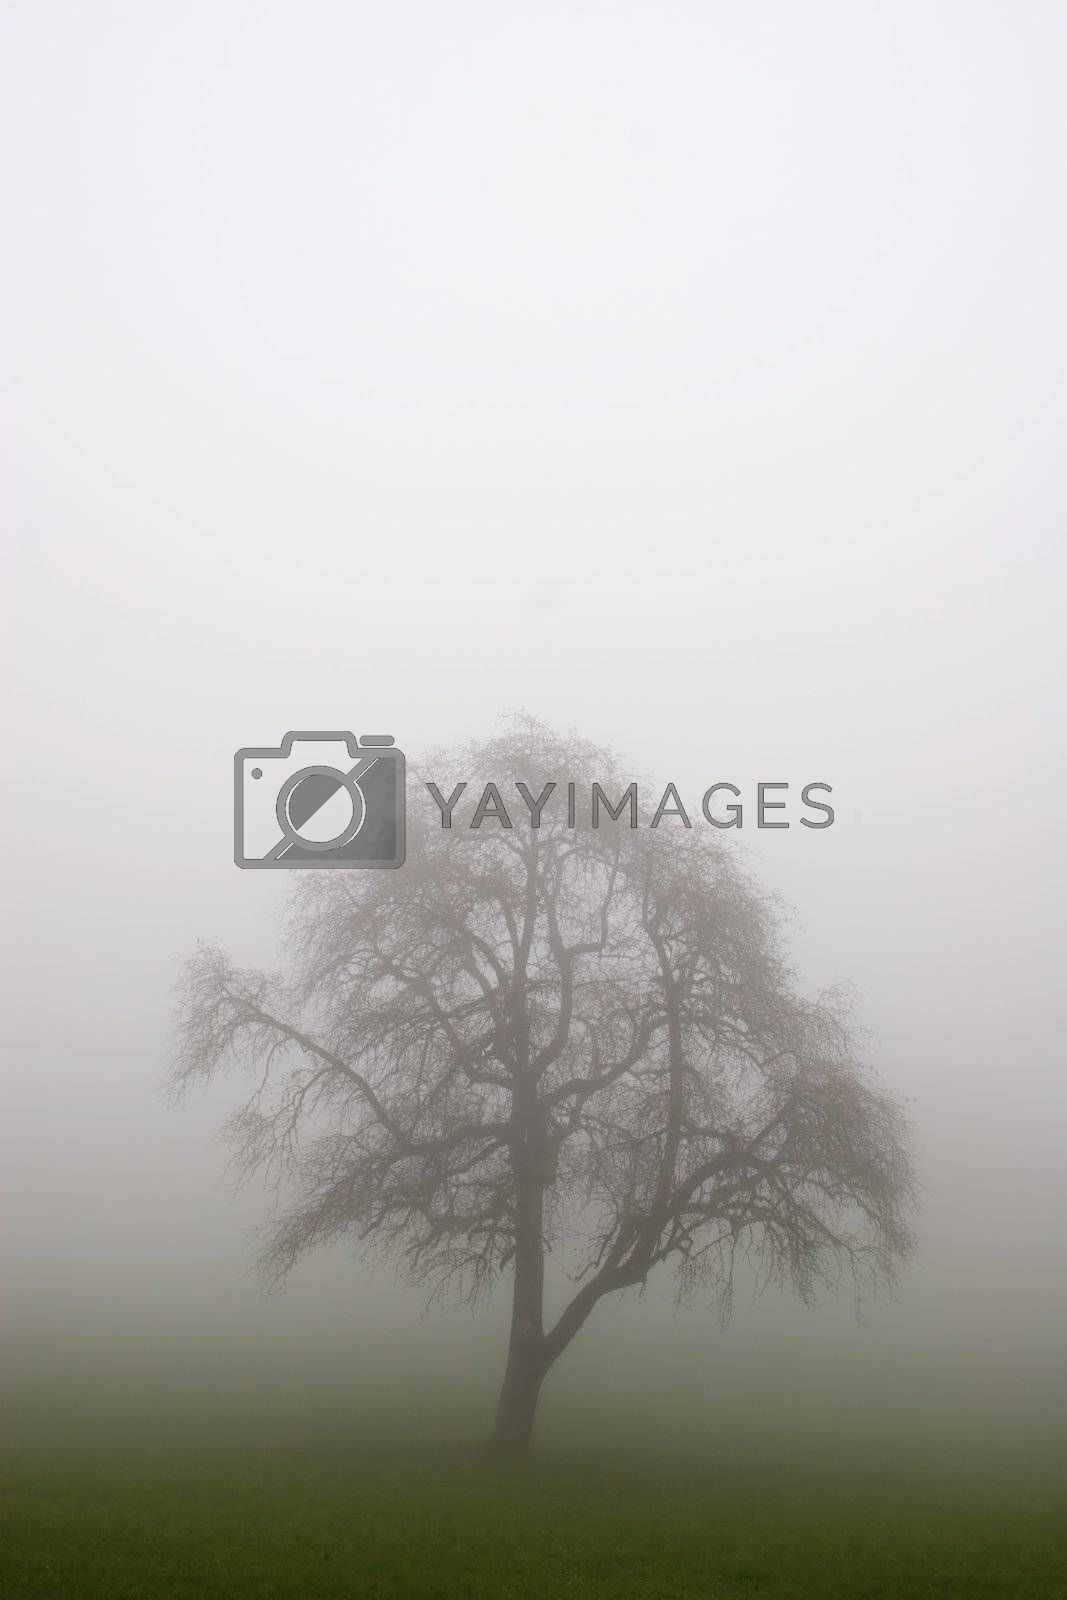 Royalty free image of Tree in the Fog by ajn